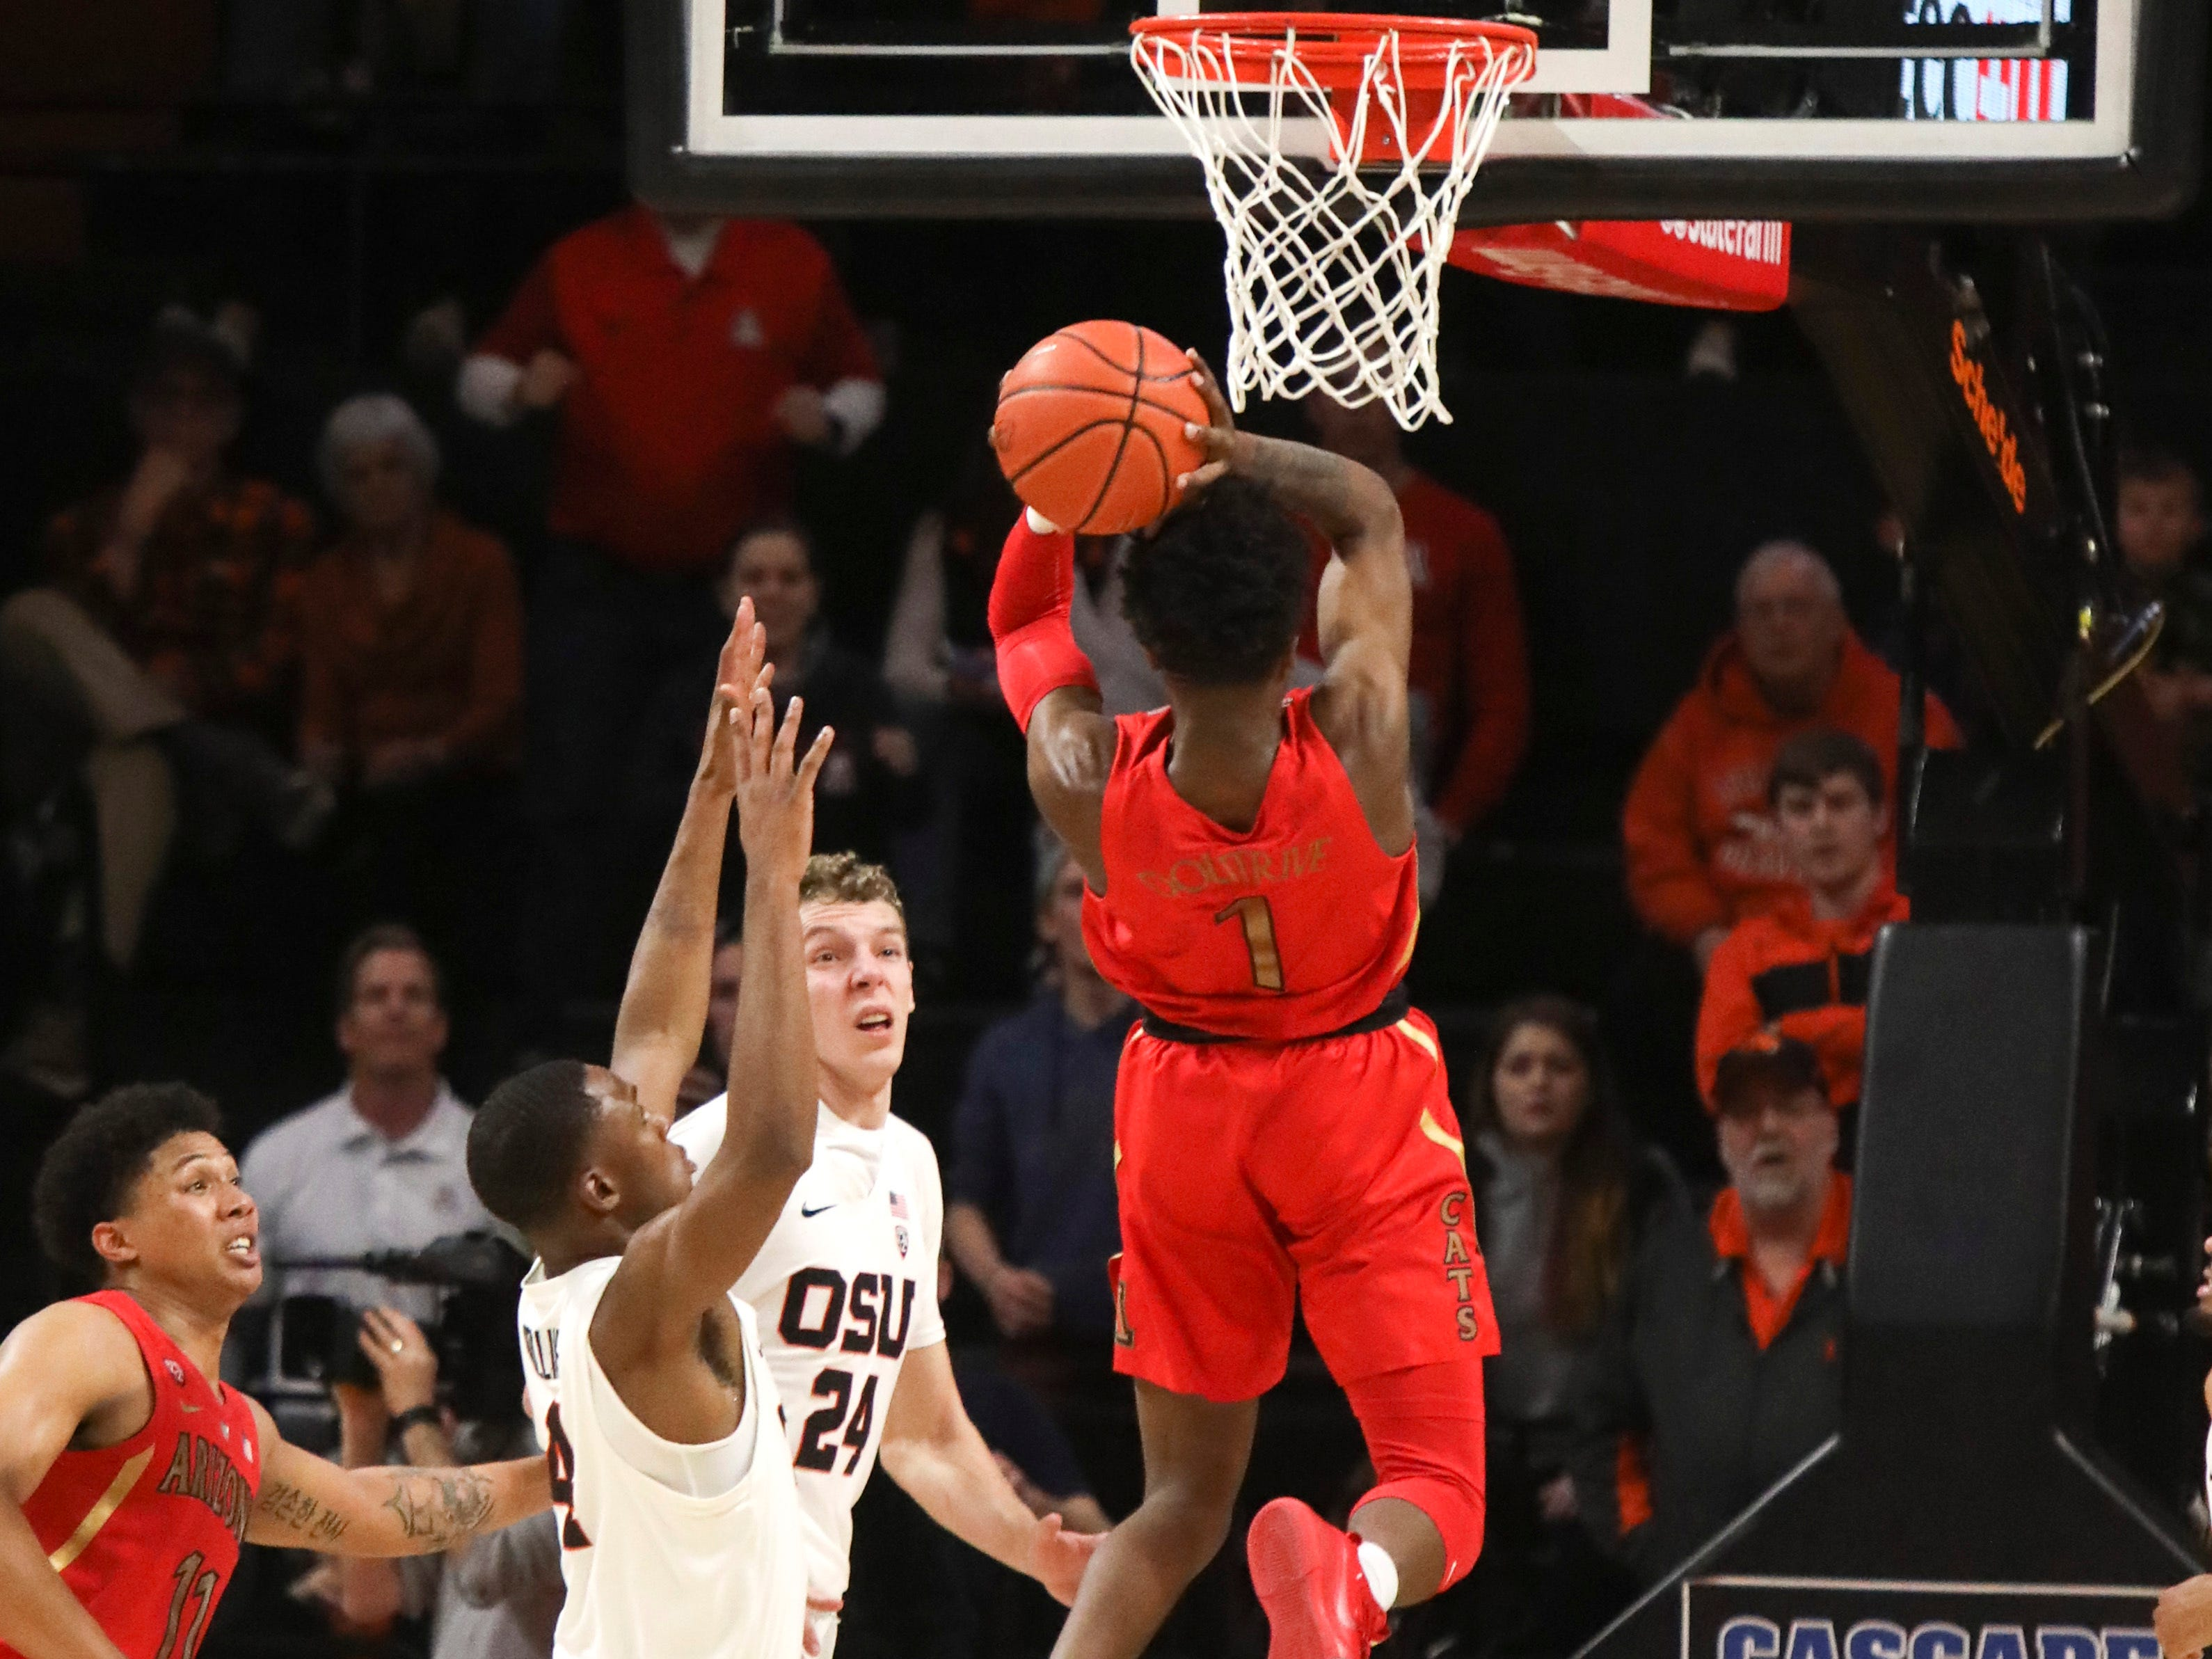 Arizona's Devonaire Doutrive (1) scores off a rebound in the final second of the game, getting past Oregon State's Alfred Hollins (4) and Kylor Kelley (24), to secure the win during an NCAA college basketball game in Corvallis, Ore., Thursday, Feb. 28, 2019. Arizona won 74-72.